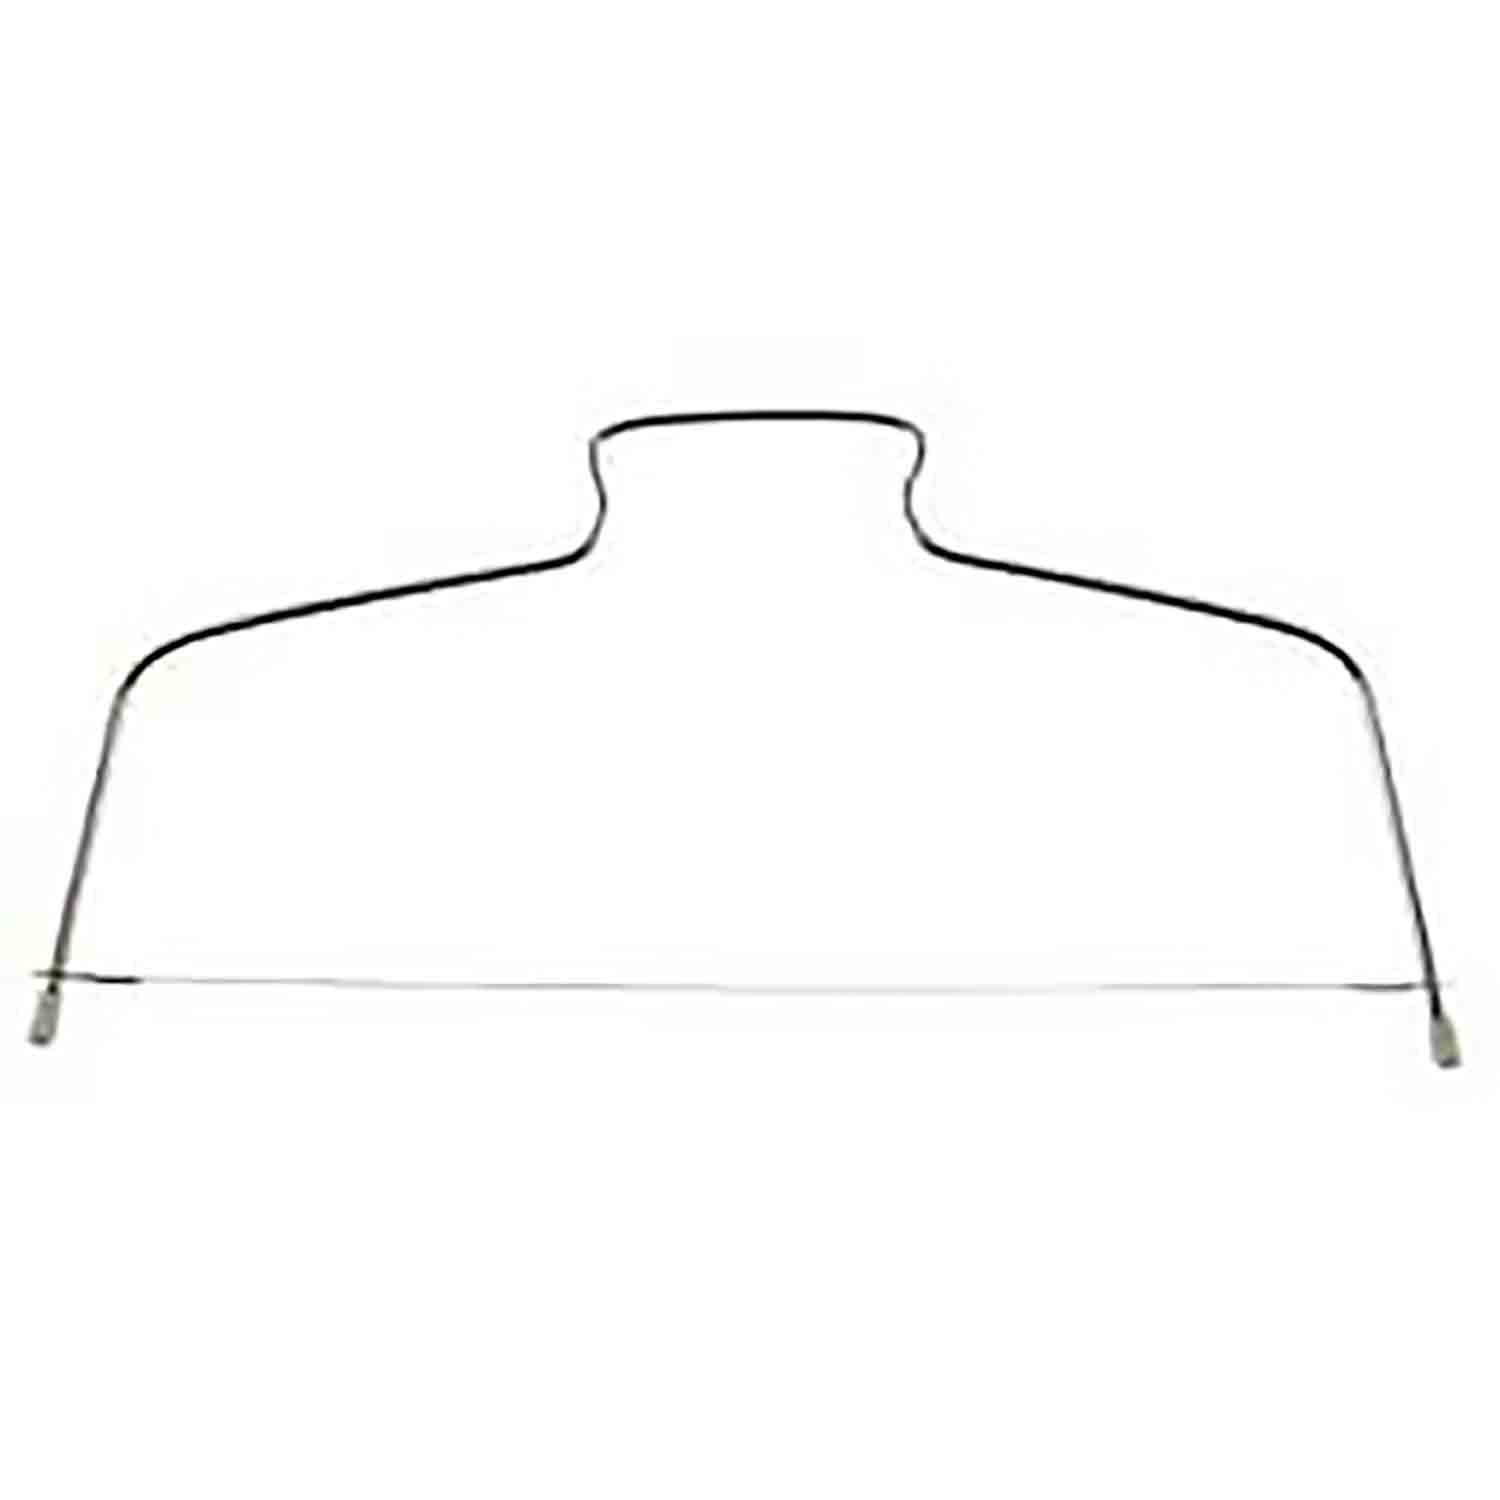 Single Wire Cake Slicer